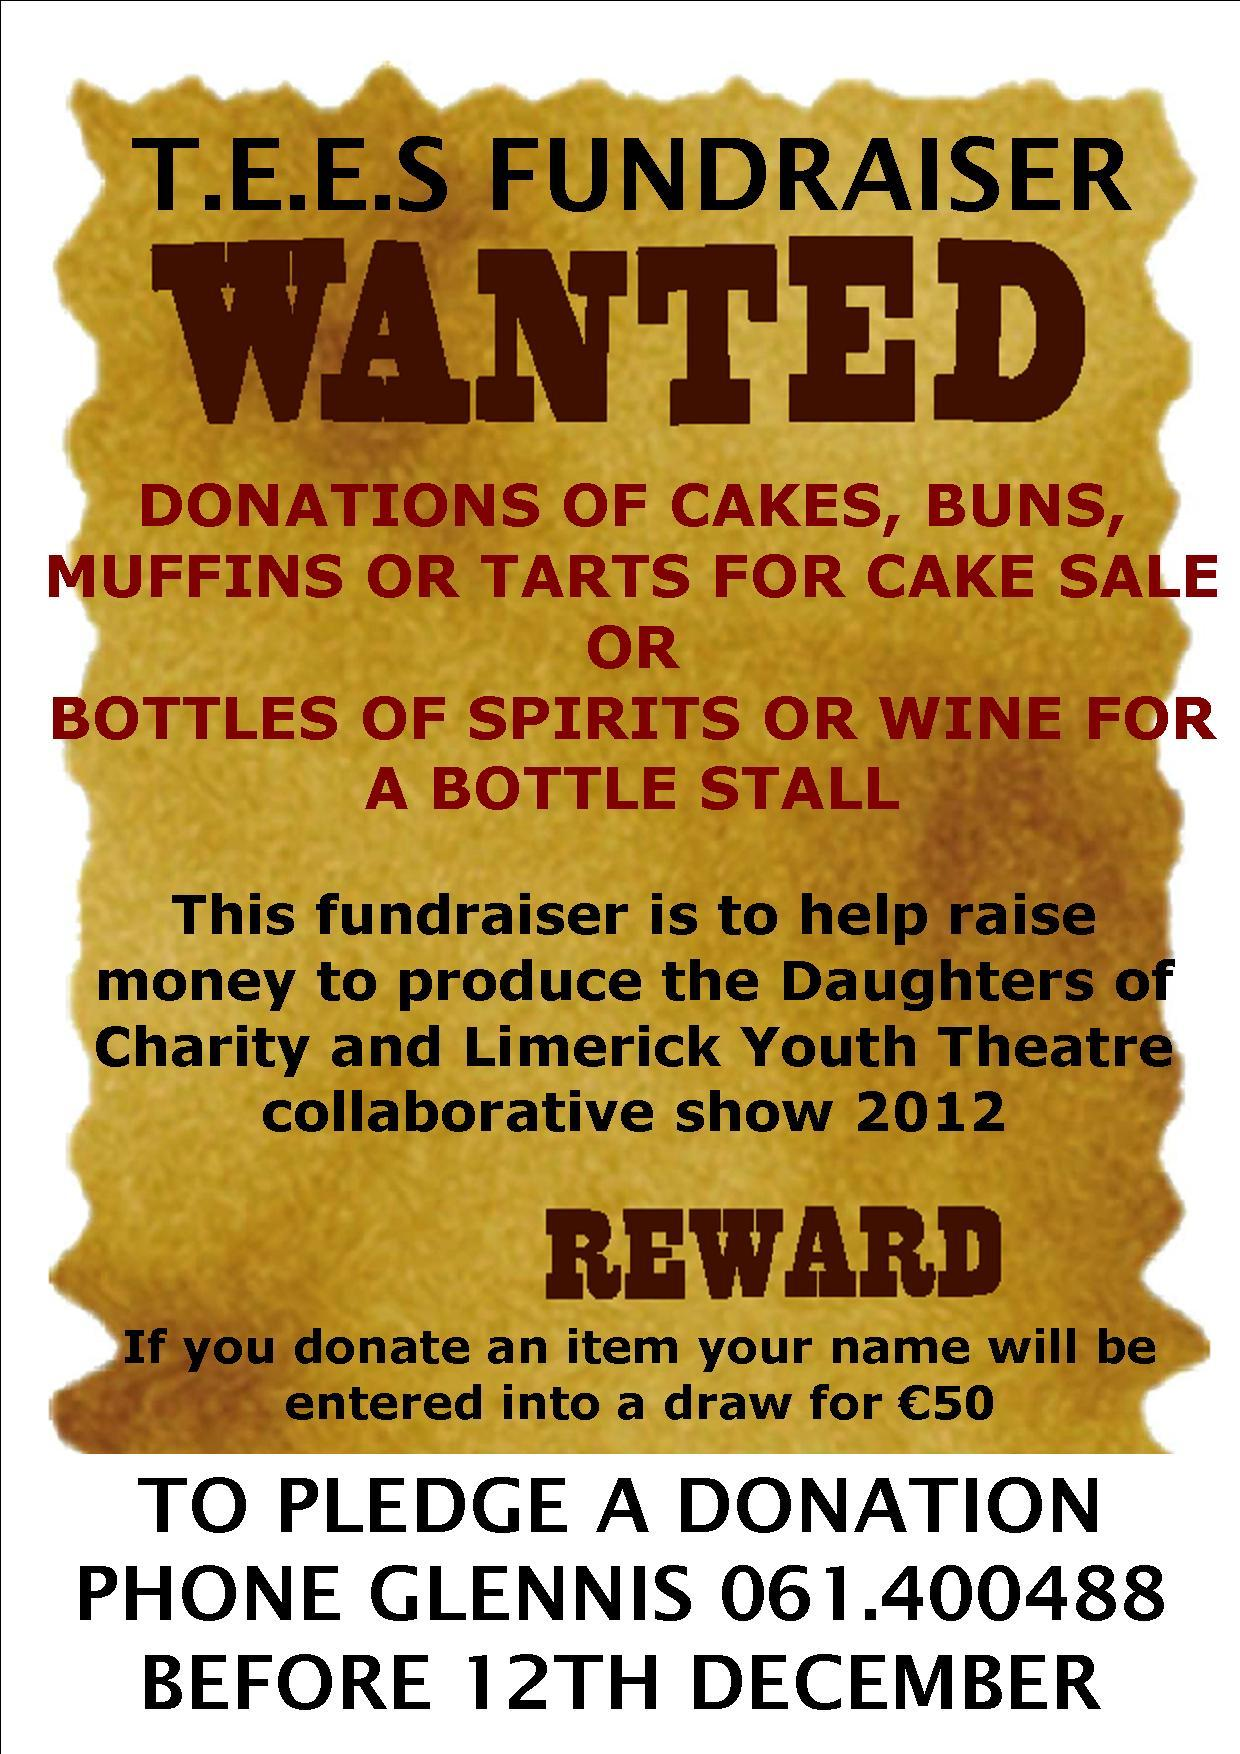 cake daughters of charity training enterprise employment cake daughters of charity training enterprise employment services limerick